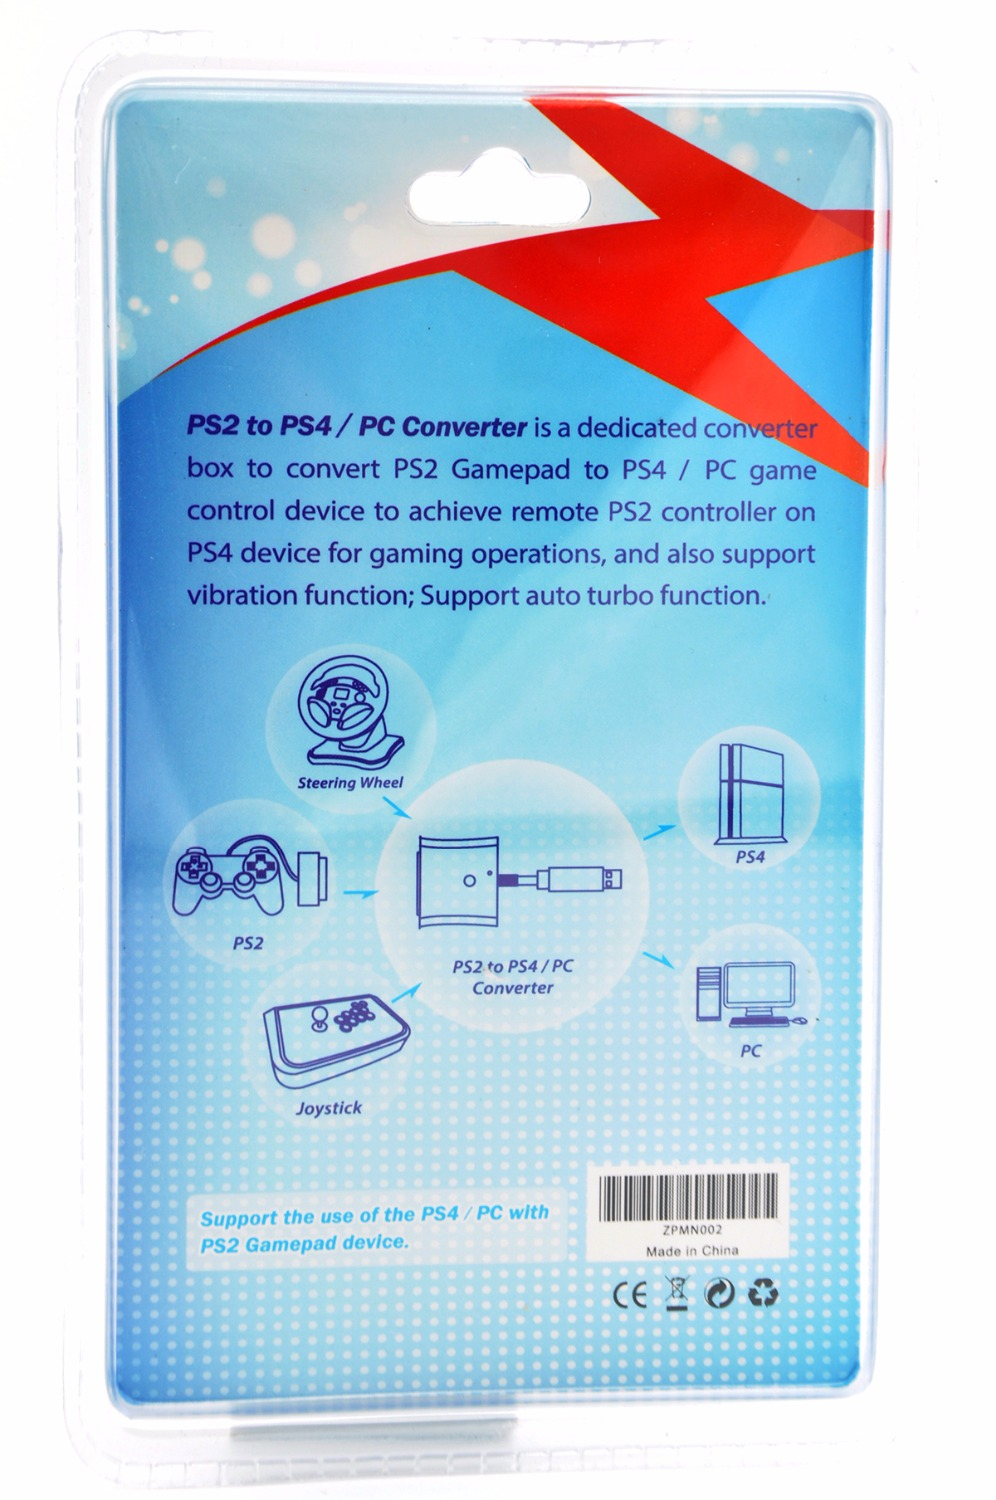 Brook Usb Super Converter For Ps2 To Ps3 Ps4 Controller Wiring Diagram Along With Neo Geo Adapter Use Your Controllers In Replacement Parts Accessories